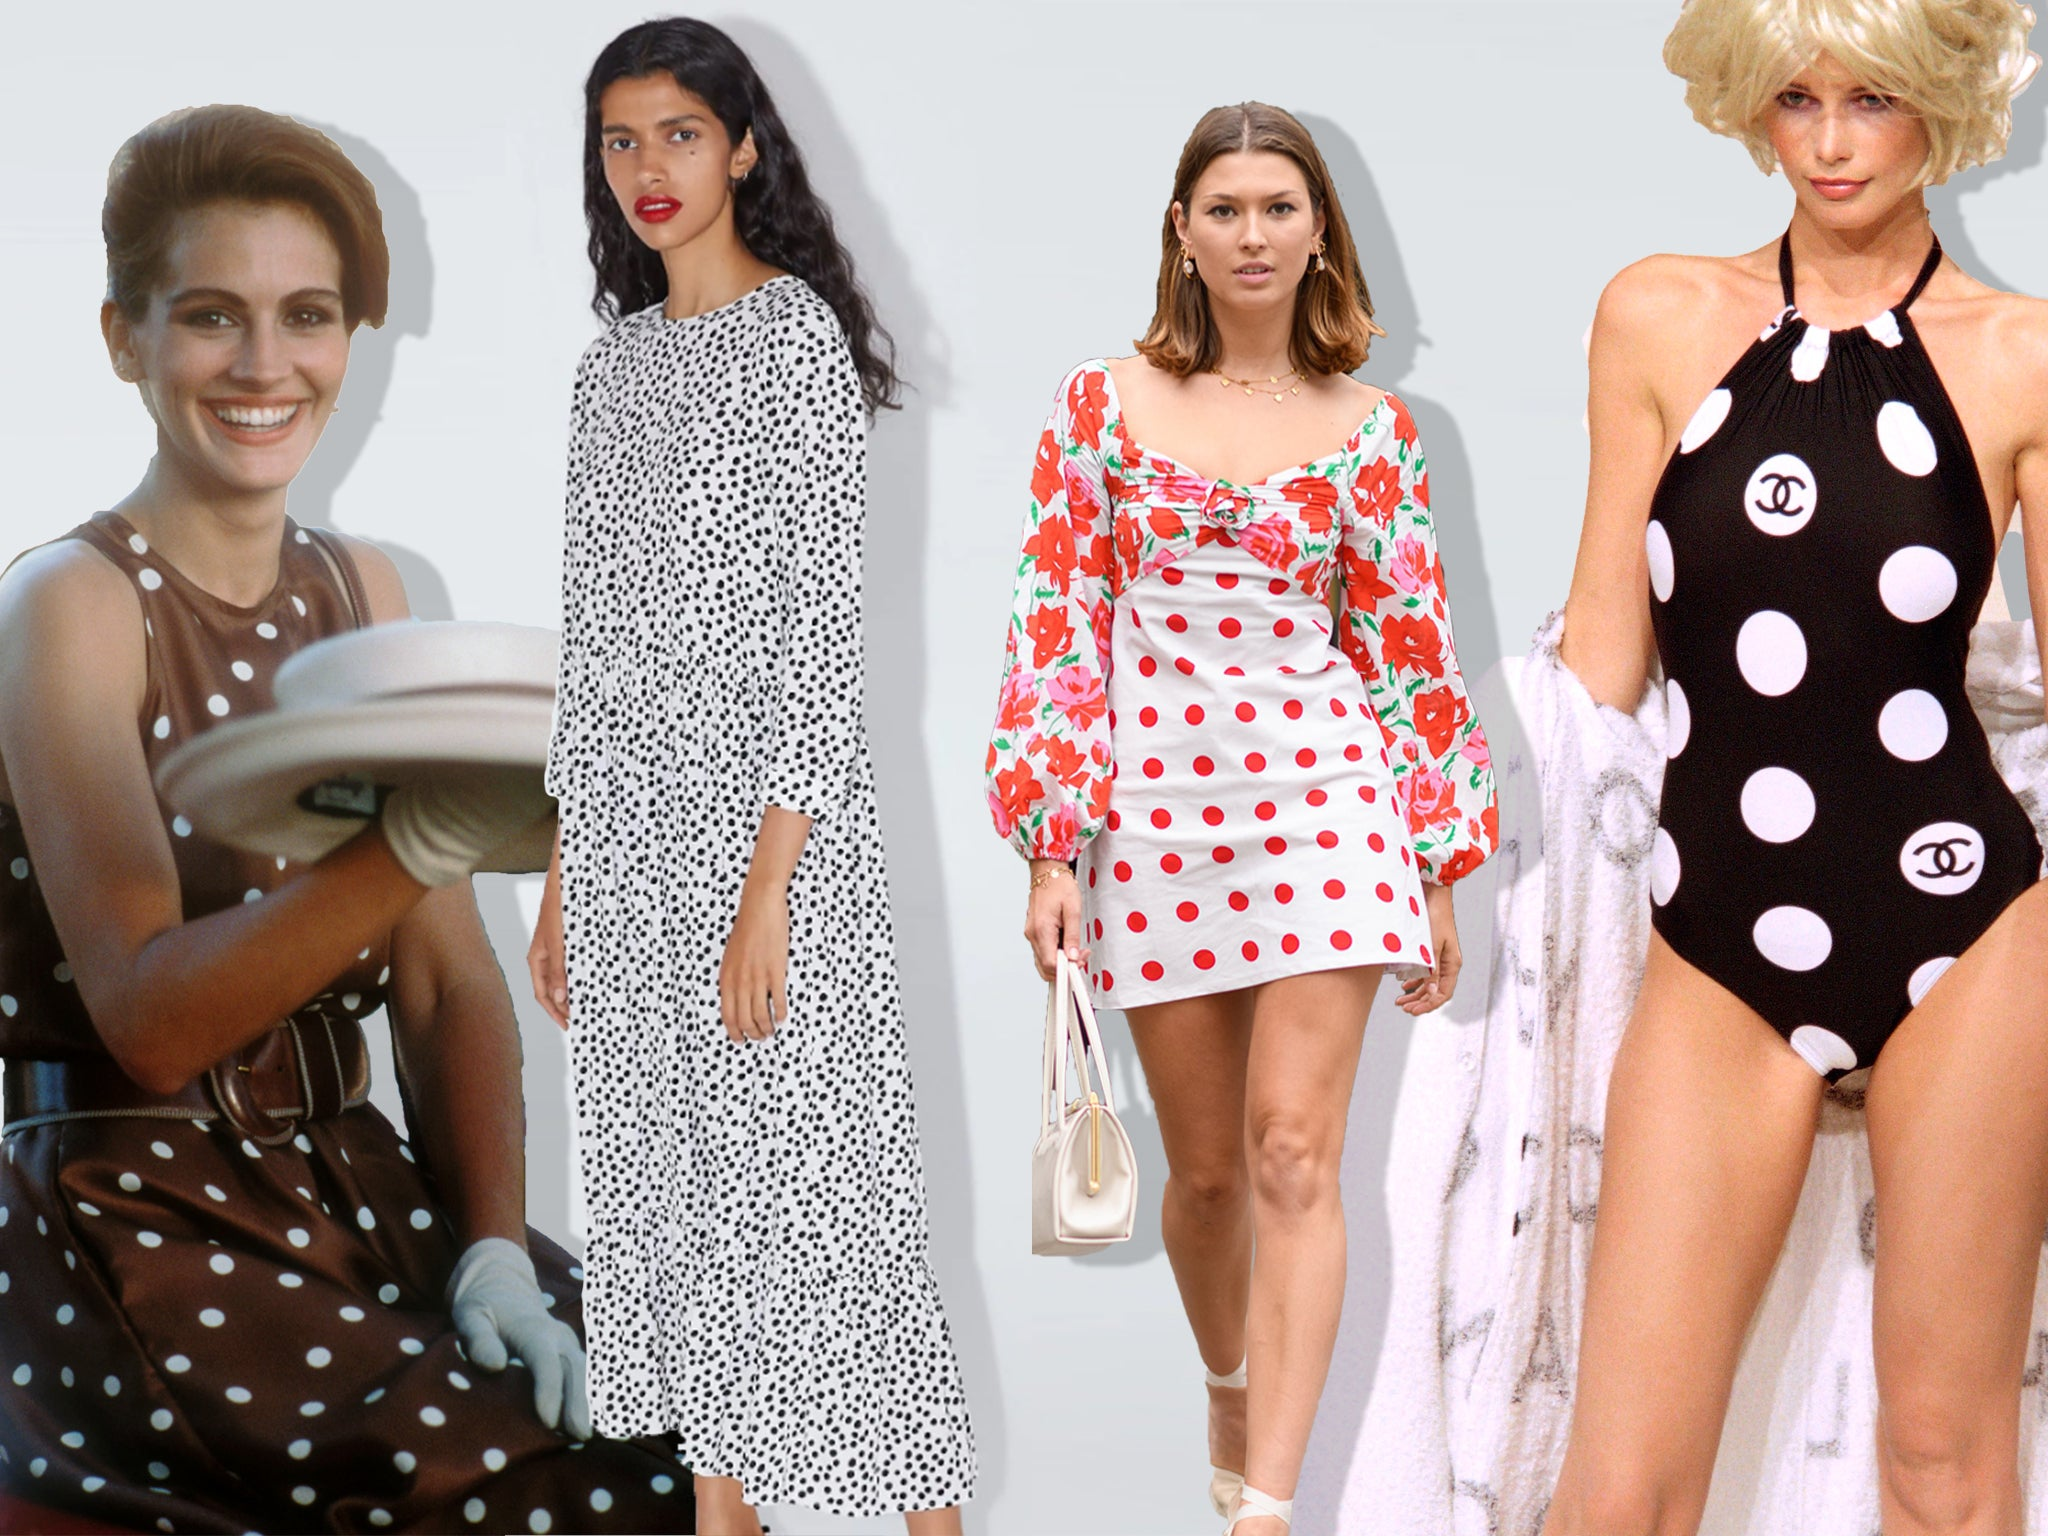 The Zara Dress Why Polka Dots Were The Hottest Trend This Summer